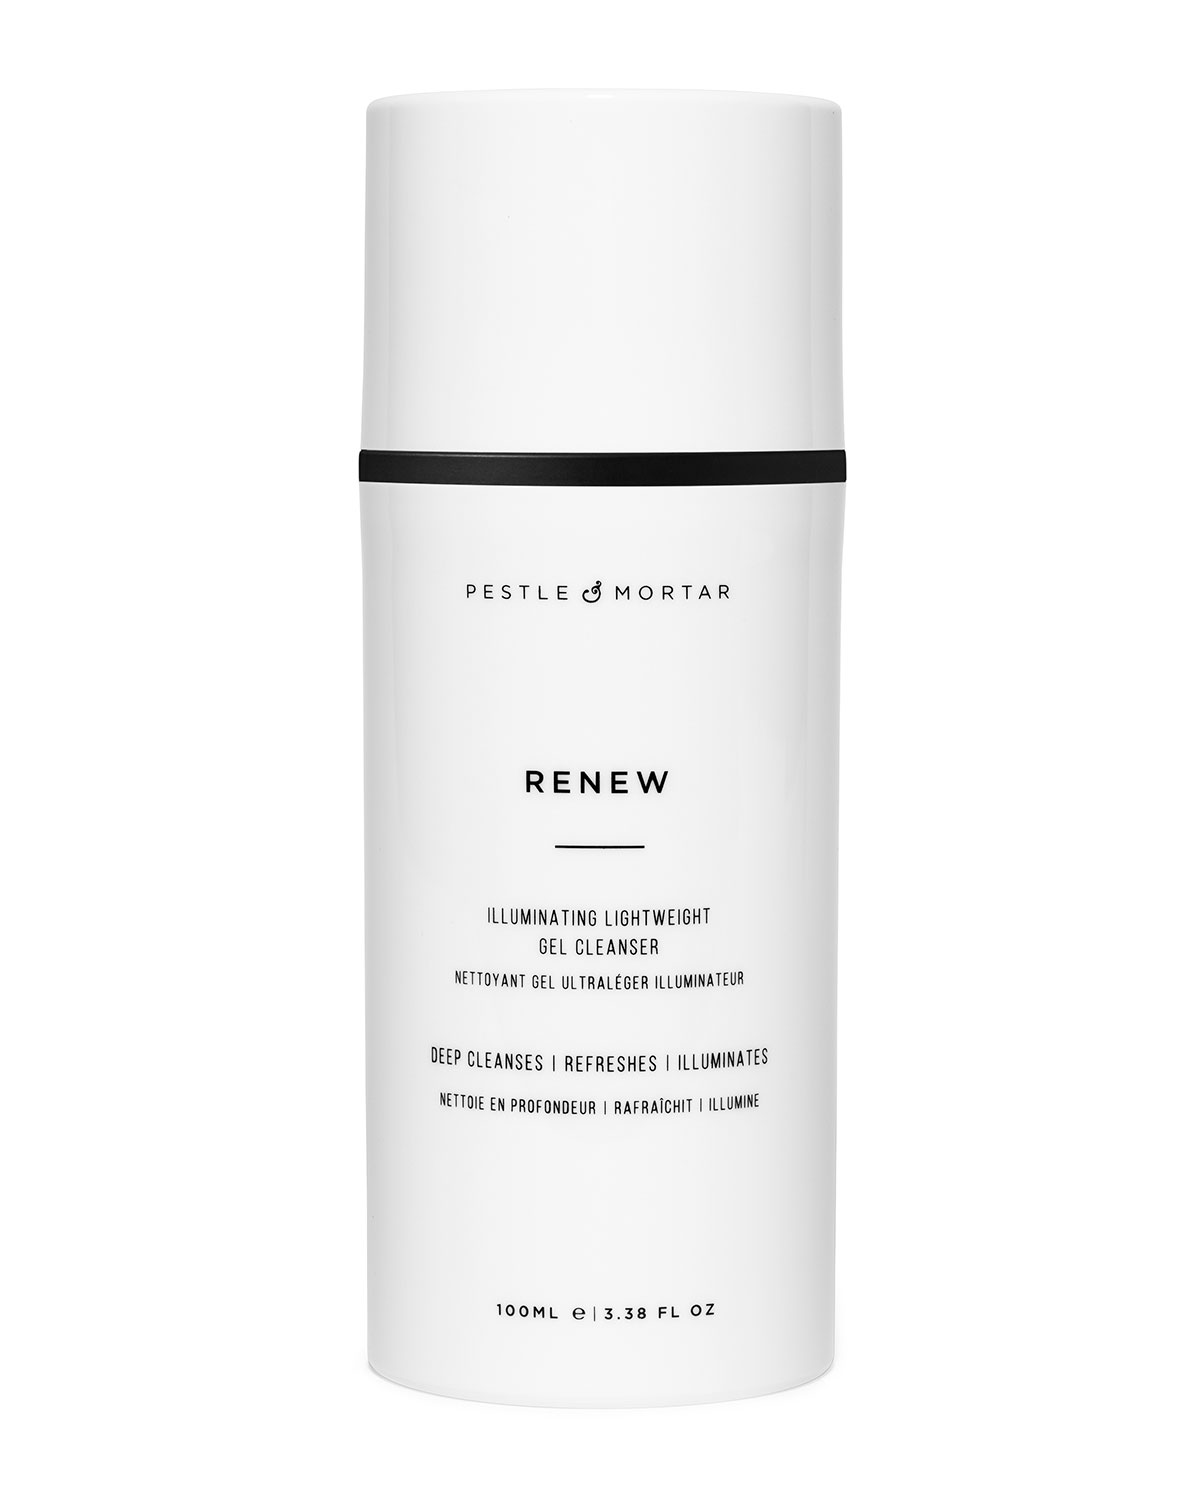 Pestle & Mortar Renew Gel Cleanser, 3.4 oz./ 100 mL